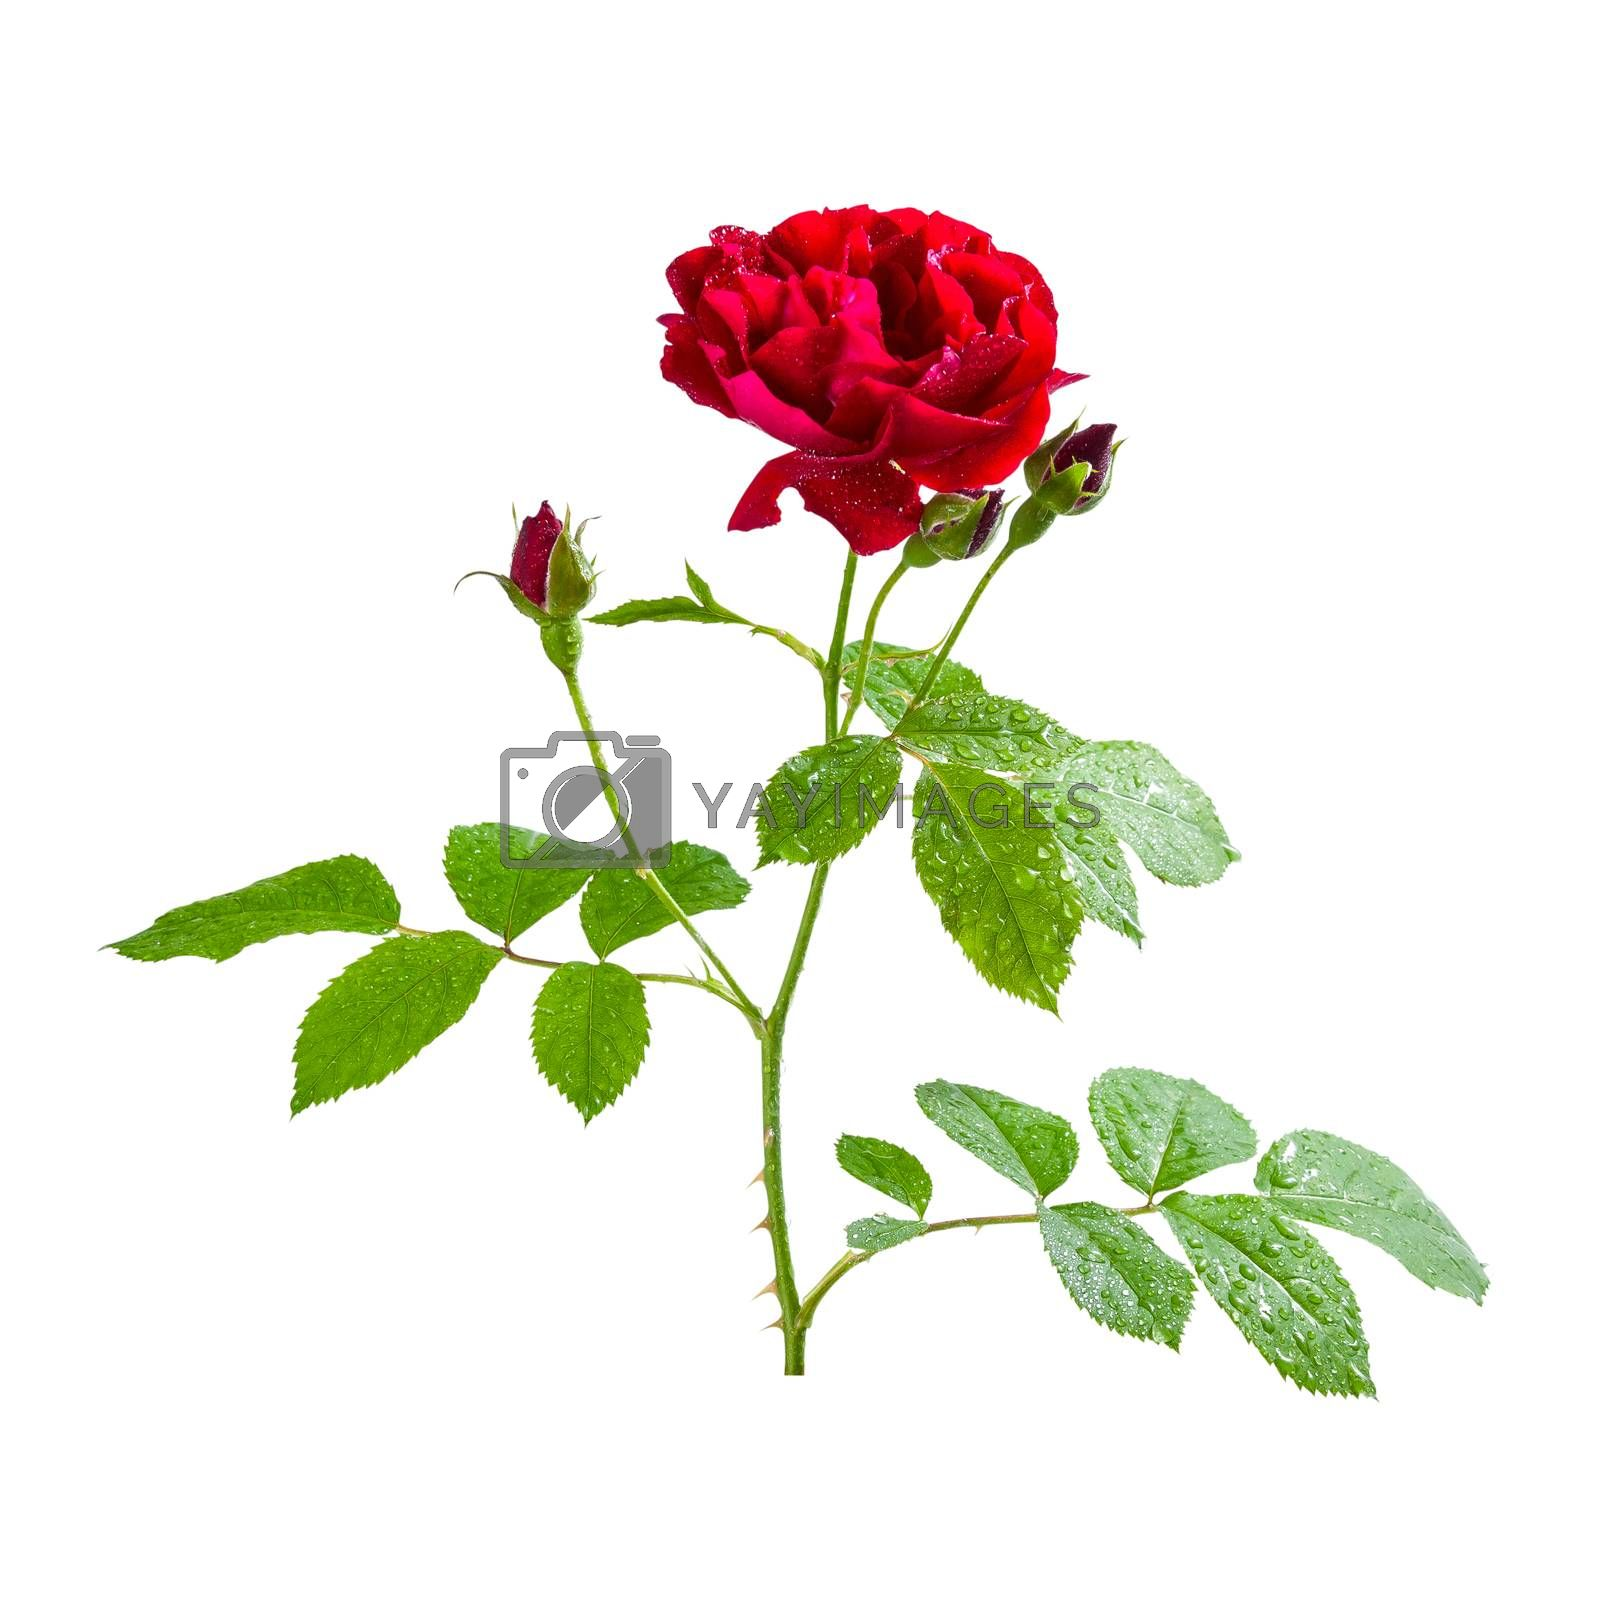 Red rose flowers with bud on branch, isolated on white backround